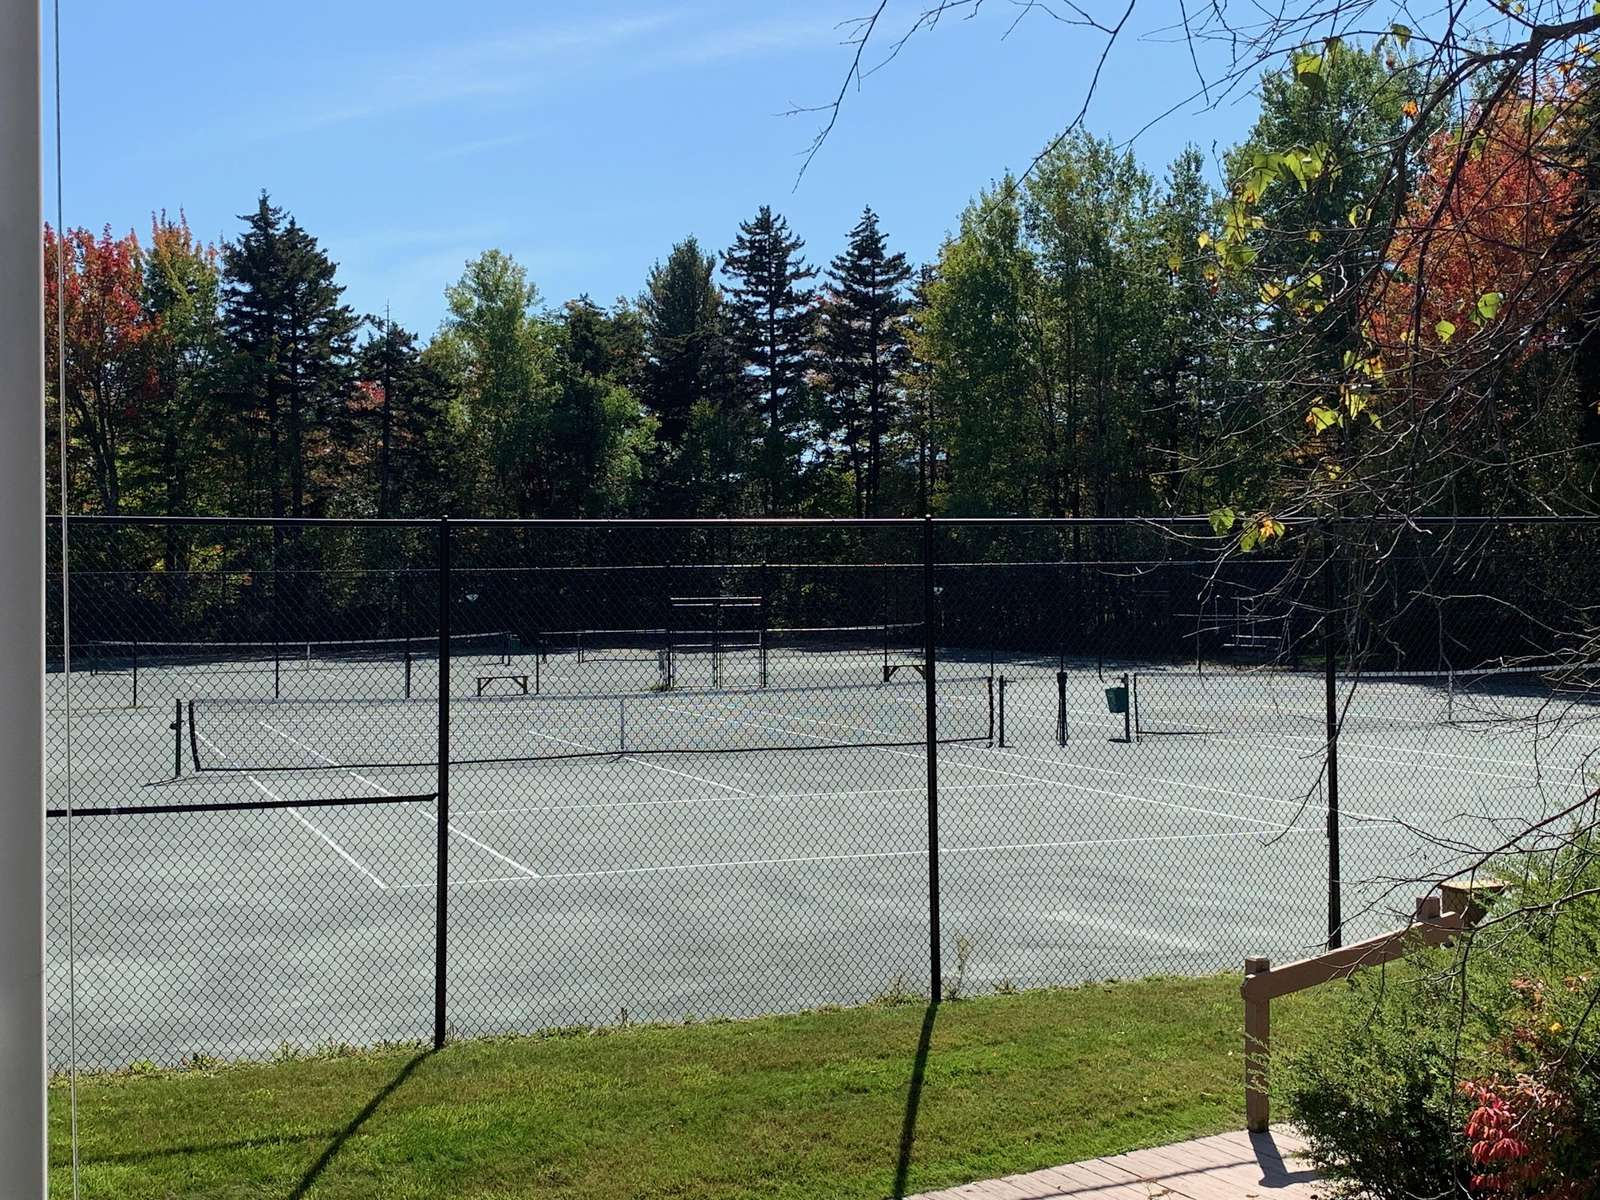 4 clay tennis courts at Sugarhouse Amenity Center